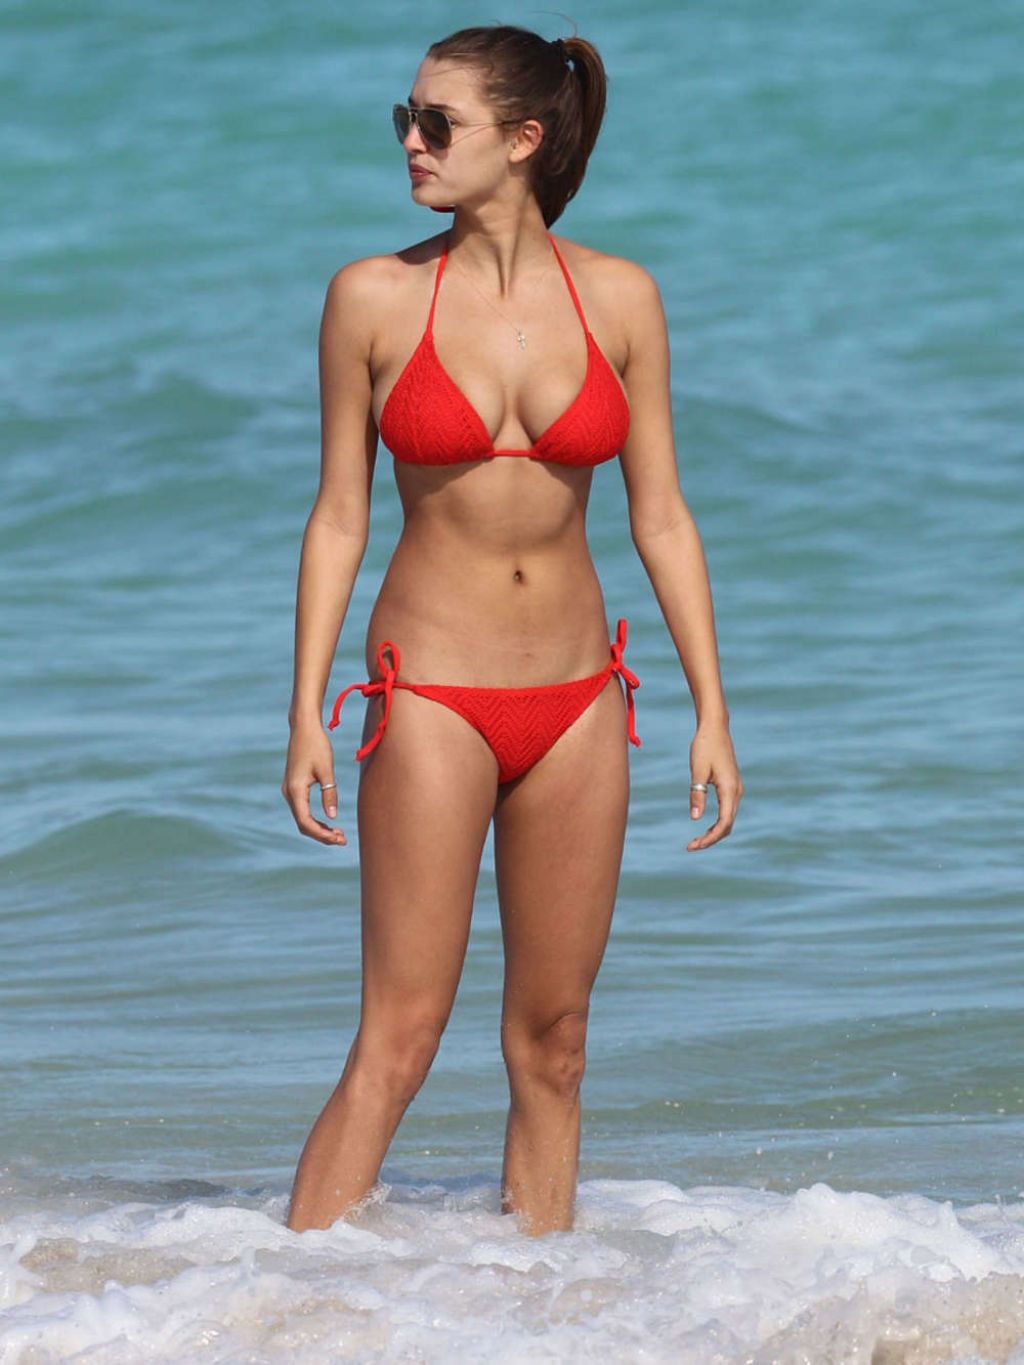 Alyssa Arce In A Bikini On The Beach In Miami November 2013